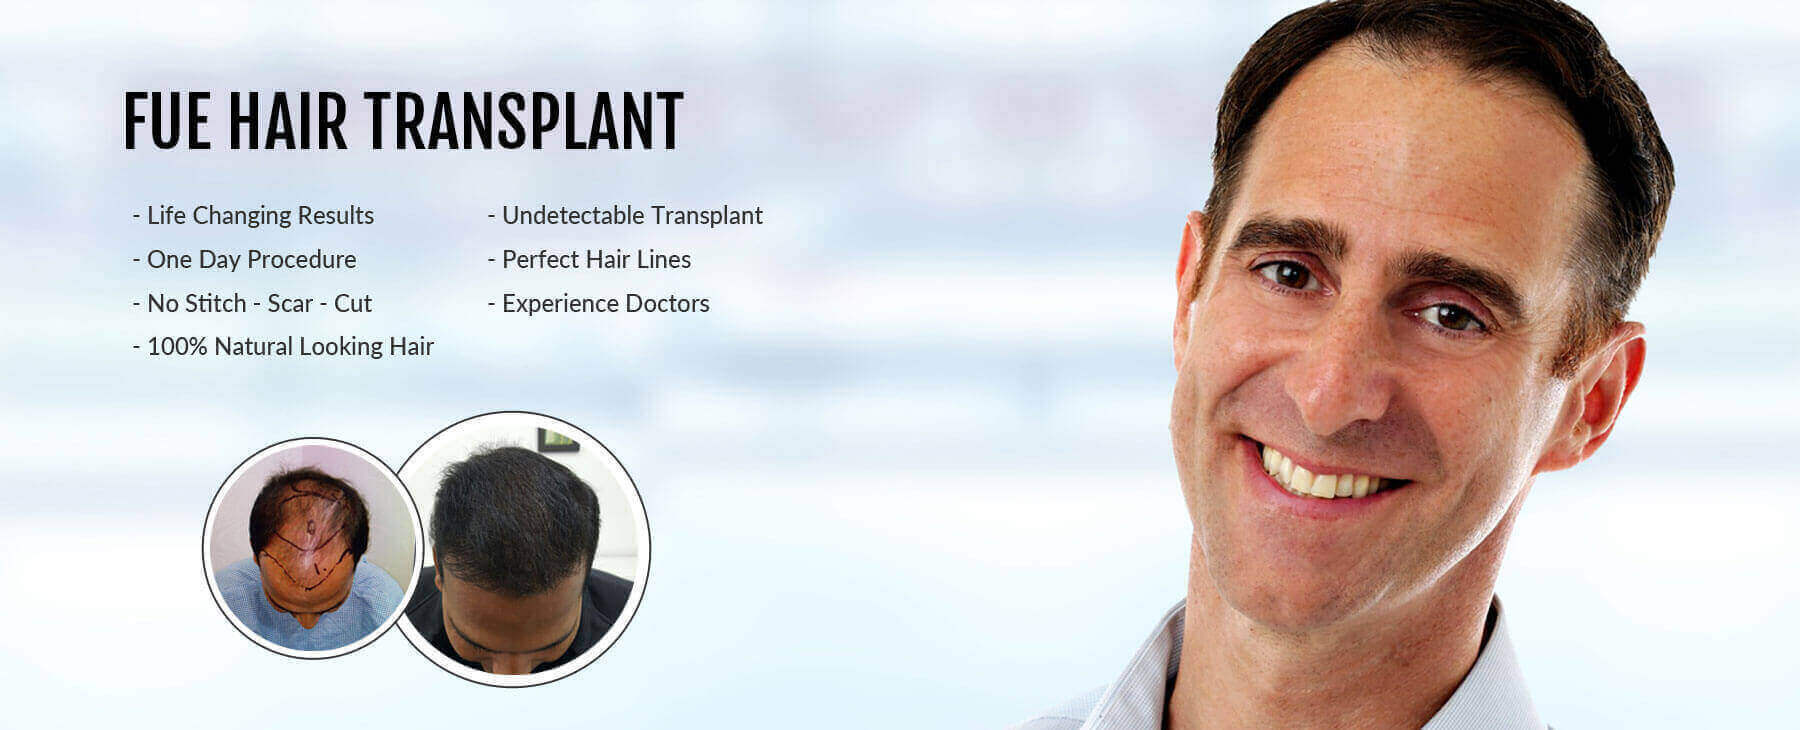 What Should You Know About FUE Hair Transplant in Delhi